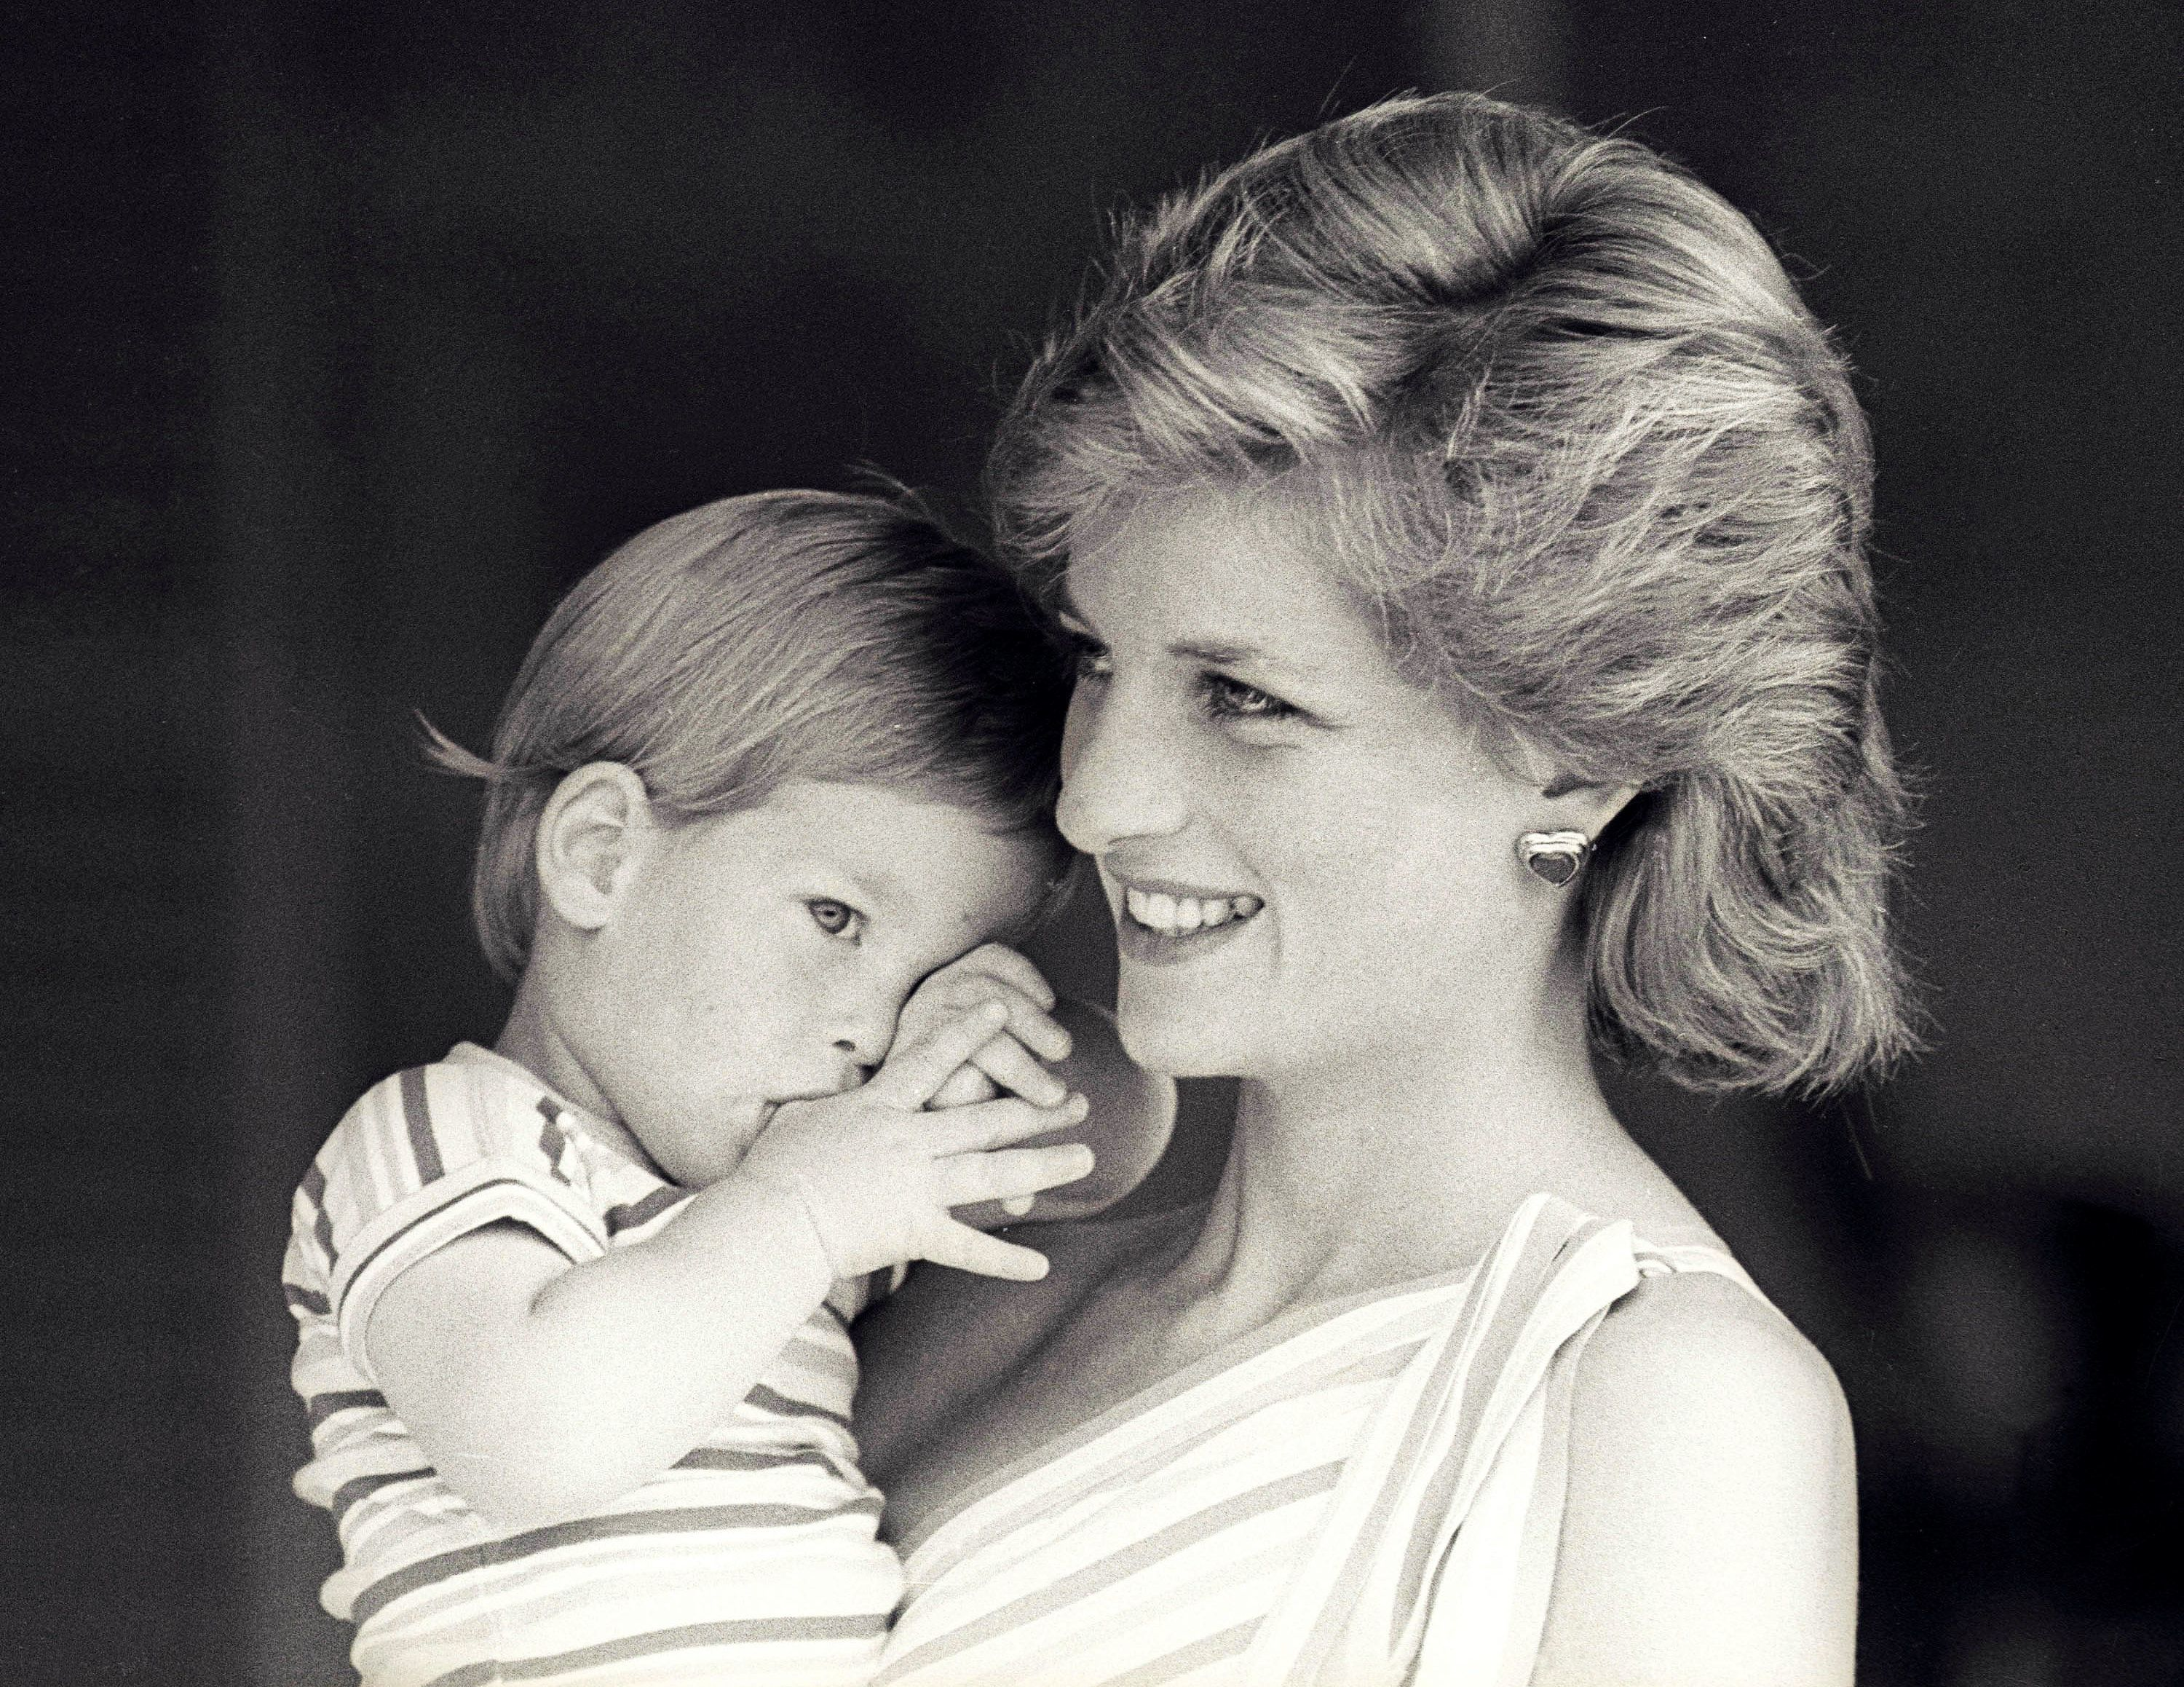 FILE PHOTO - Britain's Princess Diana holds Prince Harry during a morning picture session at Marivent Palace, where the Prince and Princess of Wales are holidaying as guests of King Juan Carlos and Queen Sofia, in Mallorca, Spain August 9, 1988.    REUTERS/Hugh Peralta/File Photo